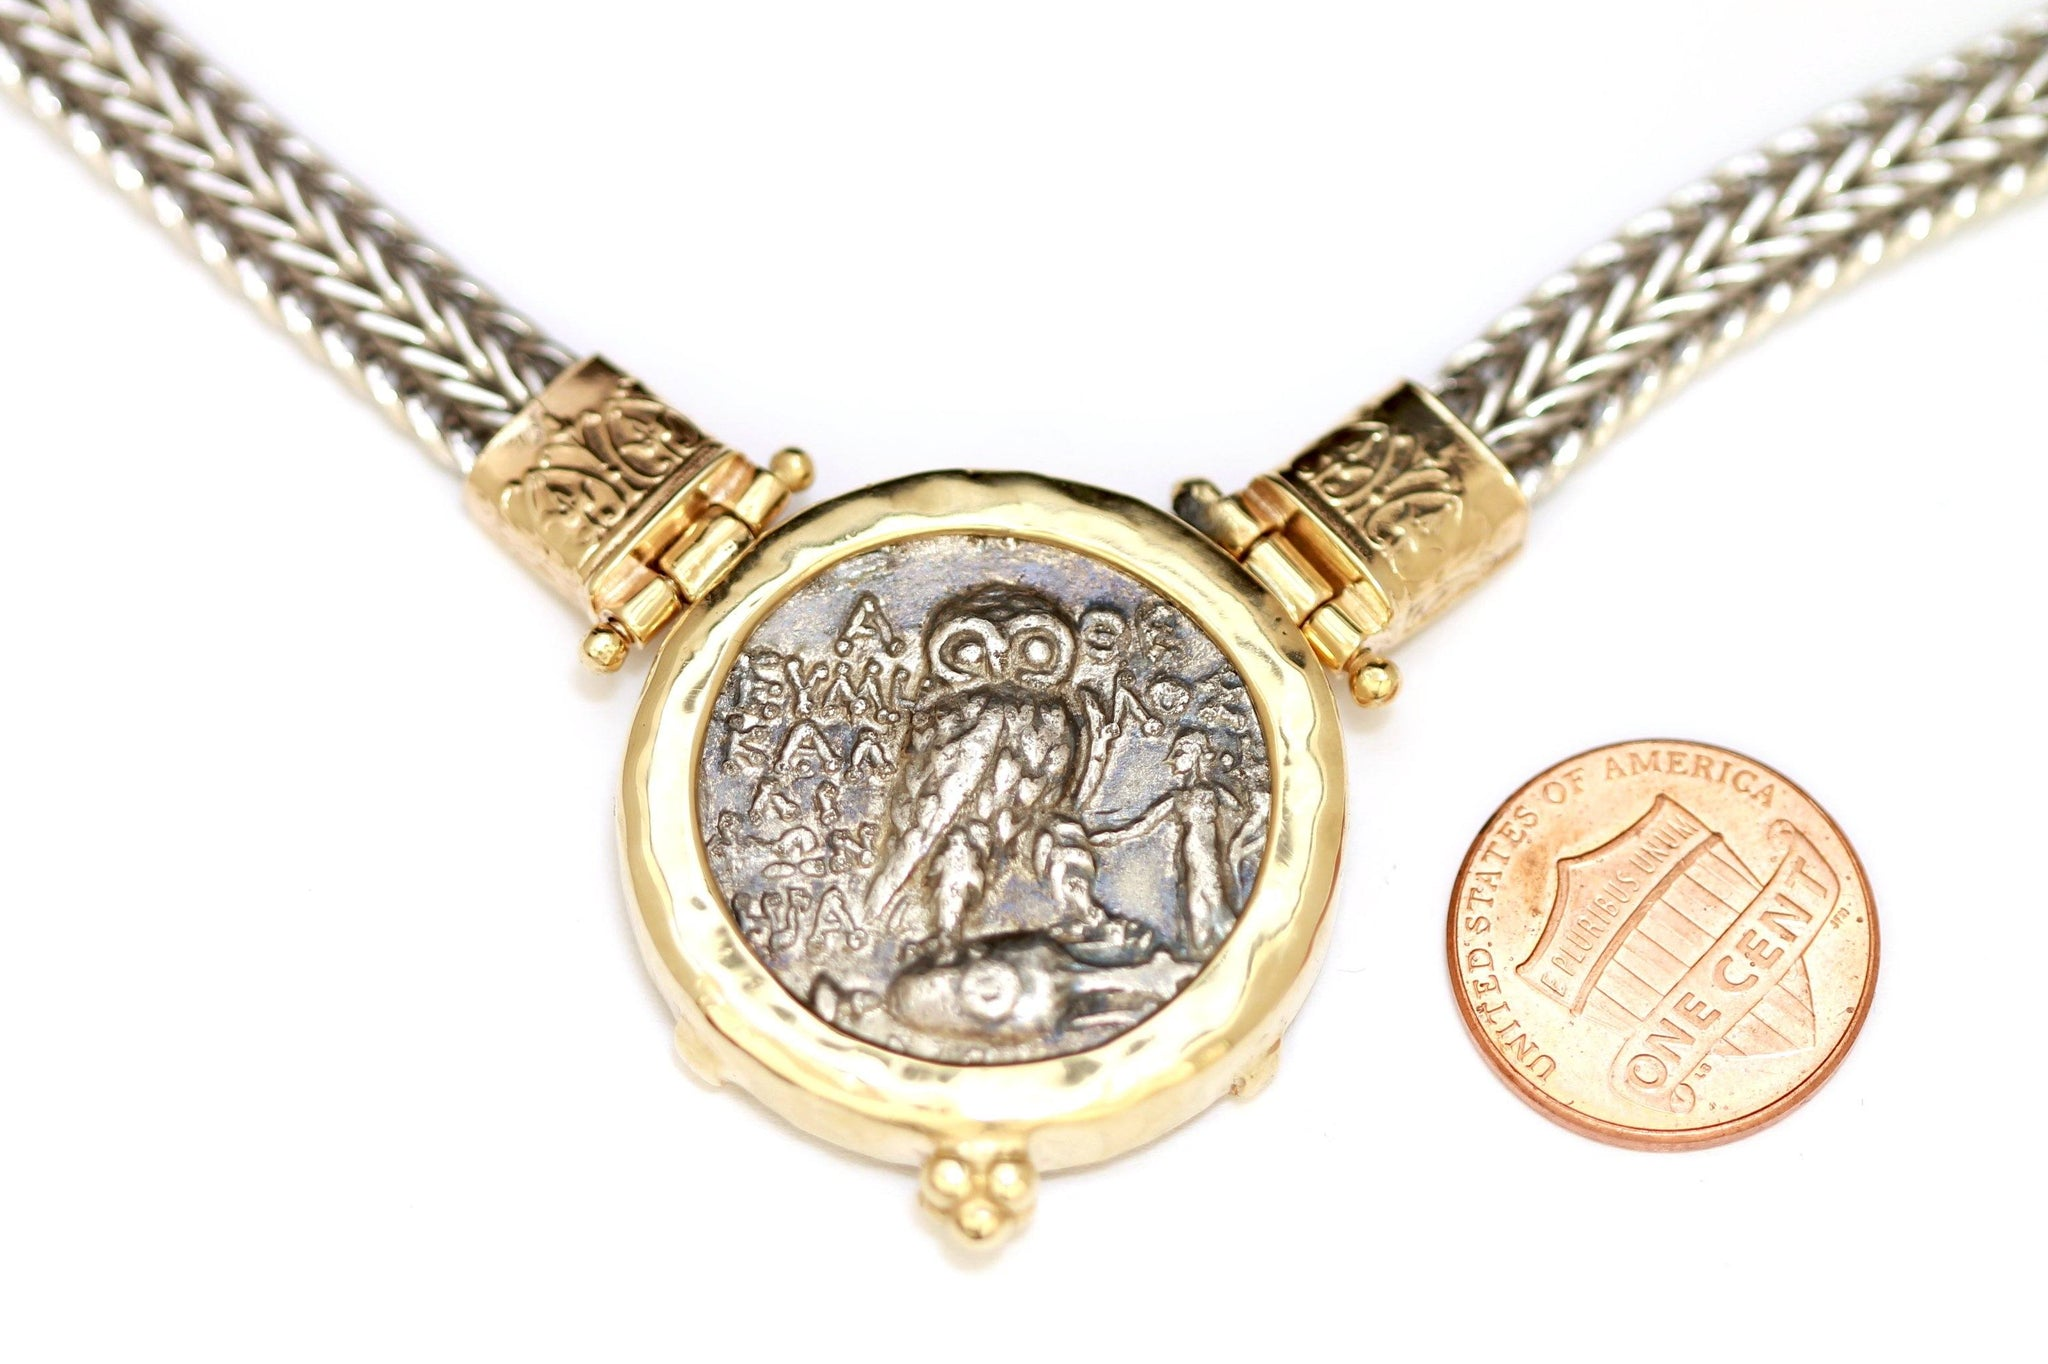 14K Gold Necklace, Silver Chain, Greek Coin, Cert. ID13132 - Erez Ancient Coin Jewelry, ancient coin jewelry, men jewelry, genuine ancient coins, made in the US